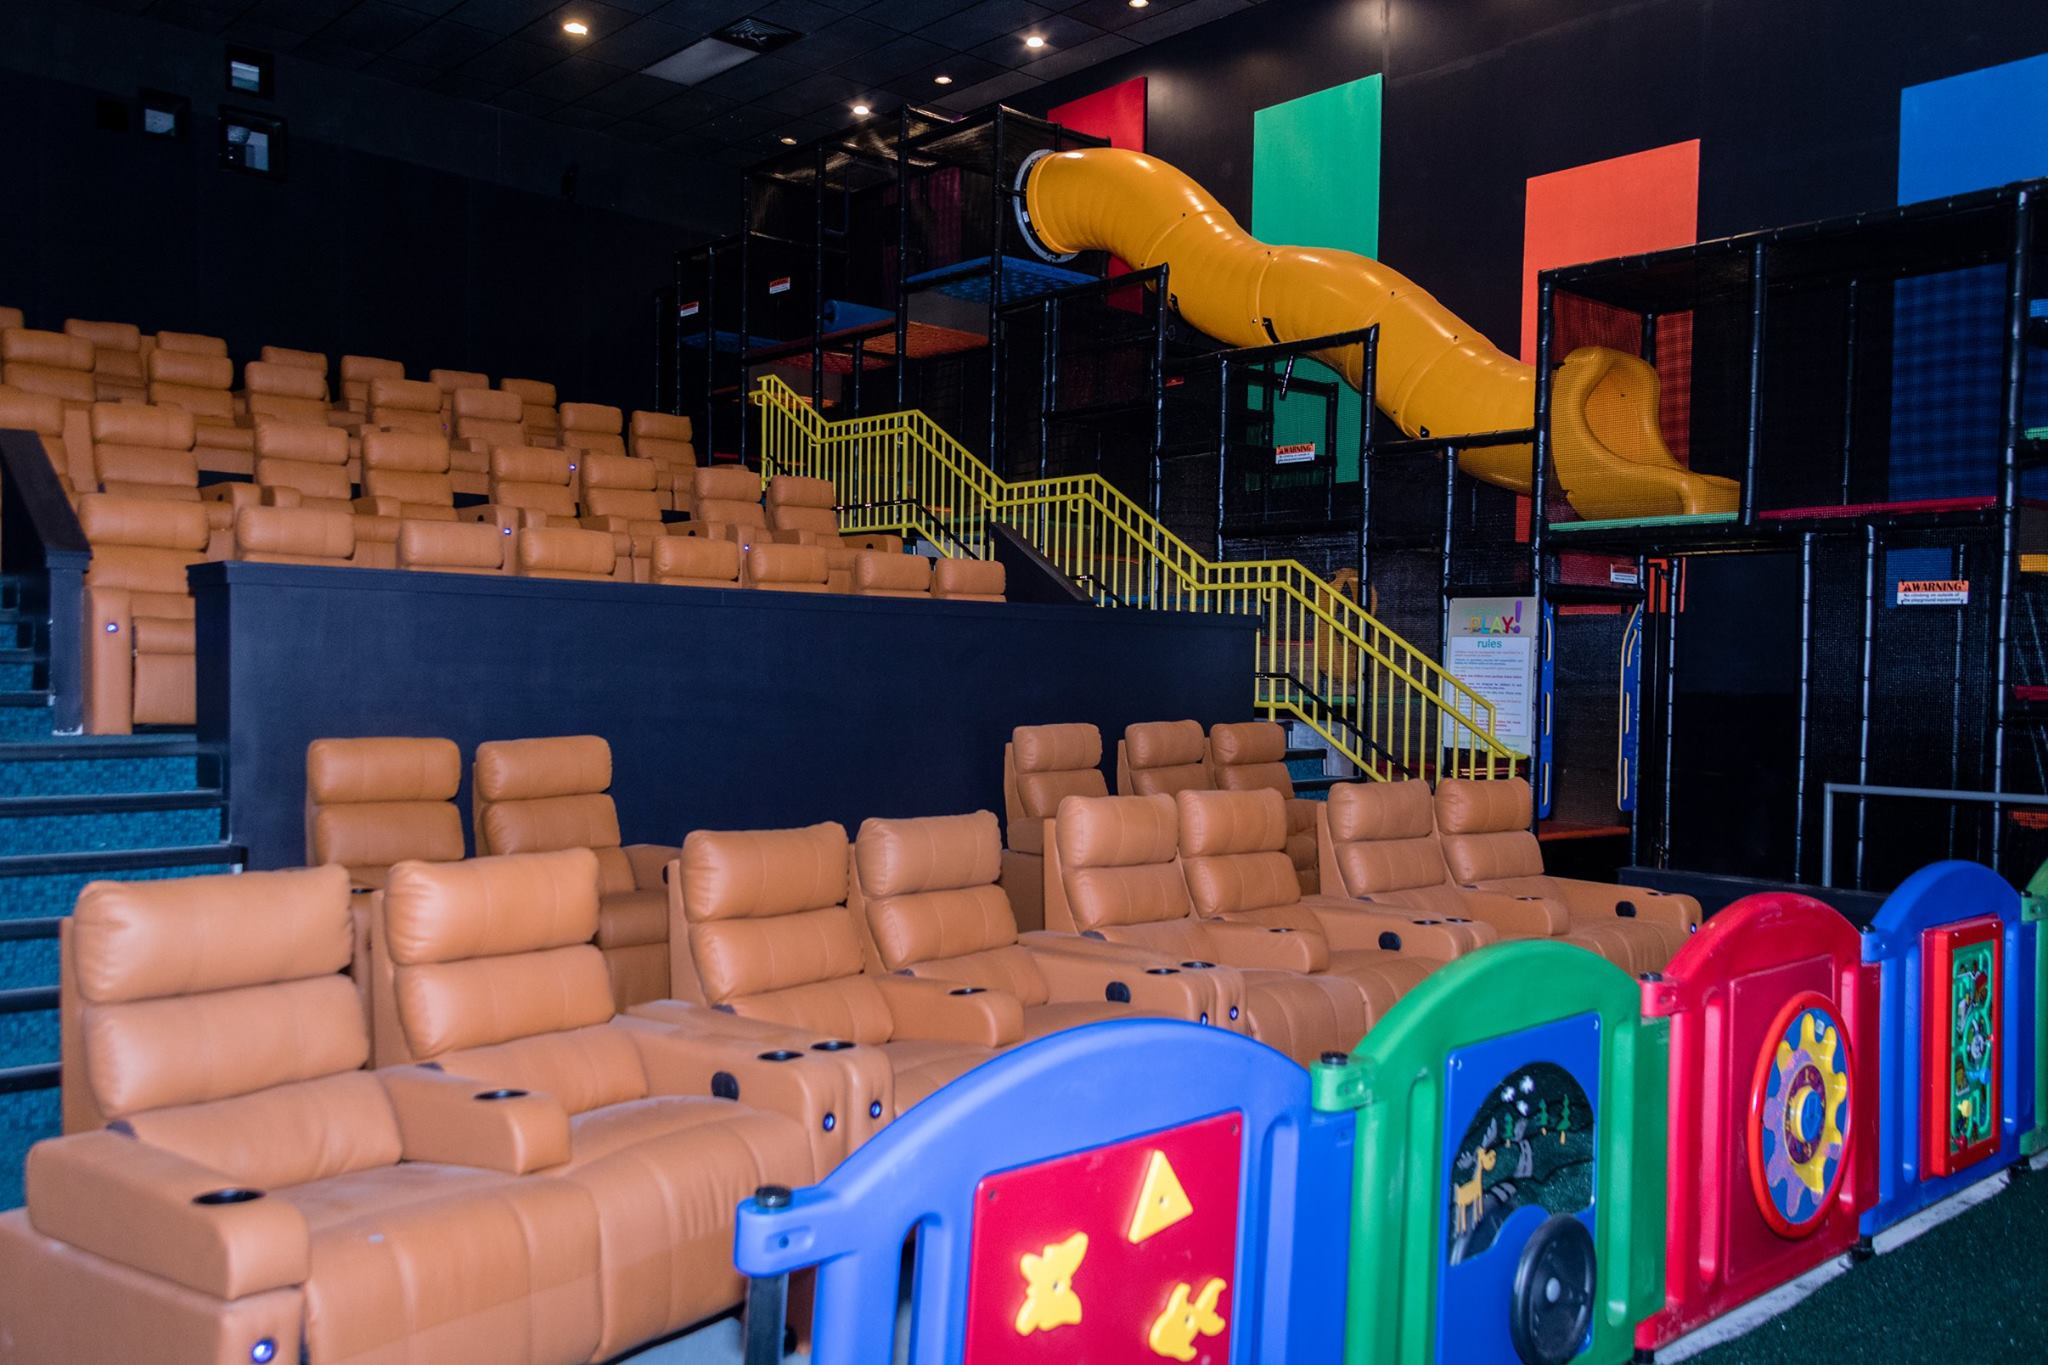 B&B Theatres Liberty Cinema 12